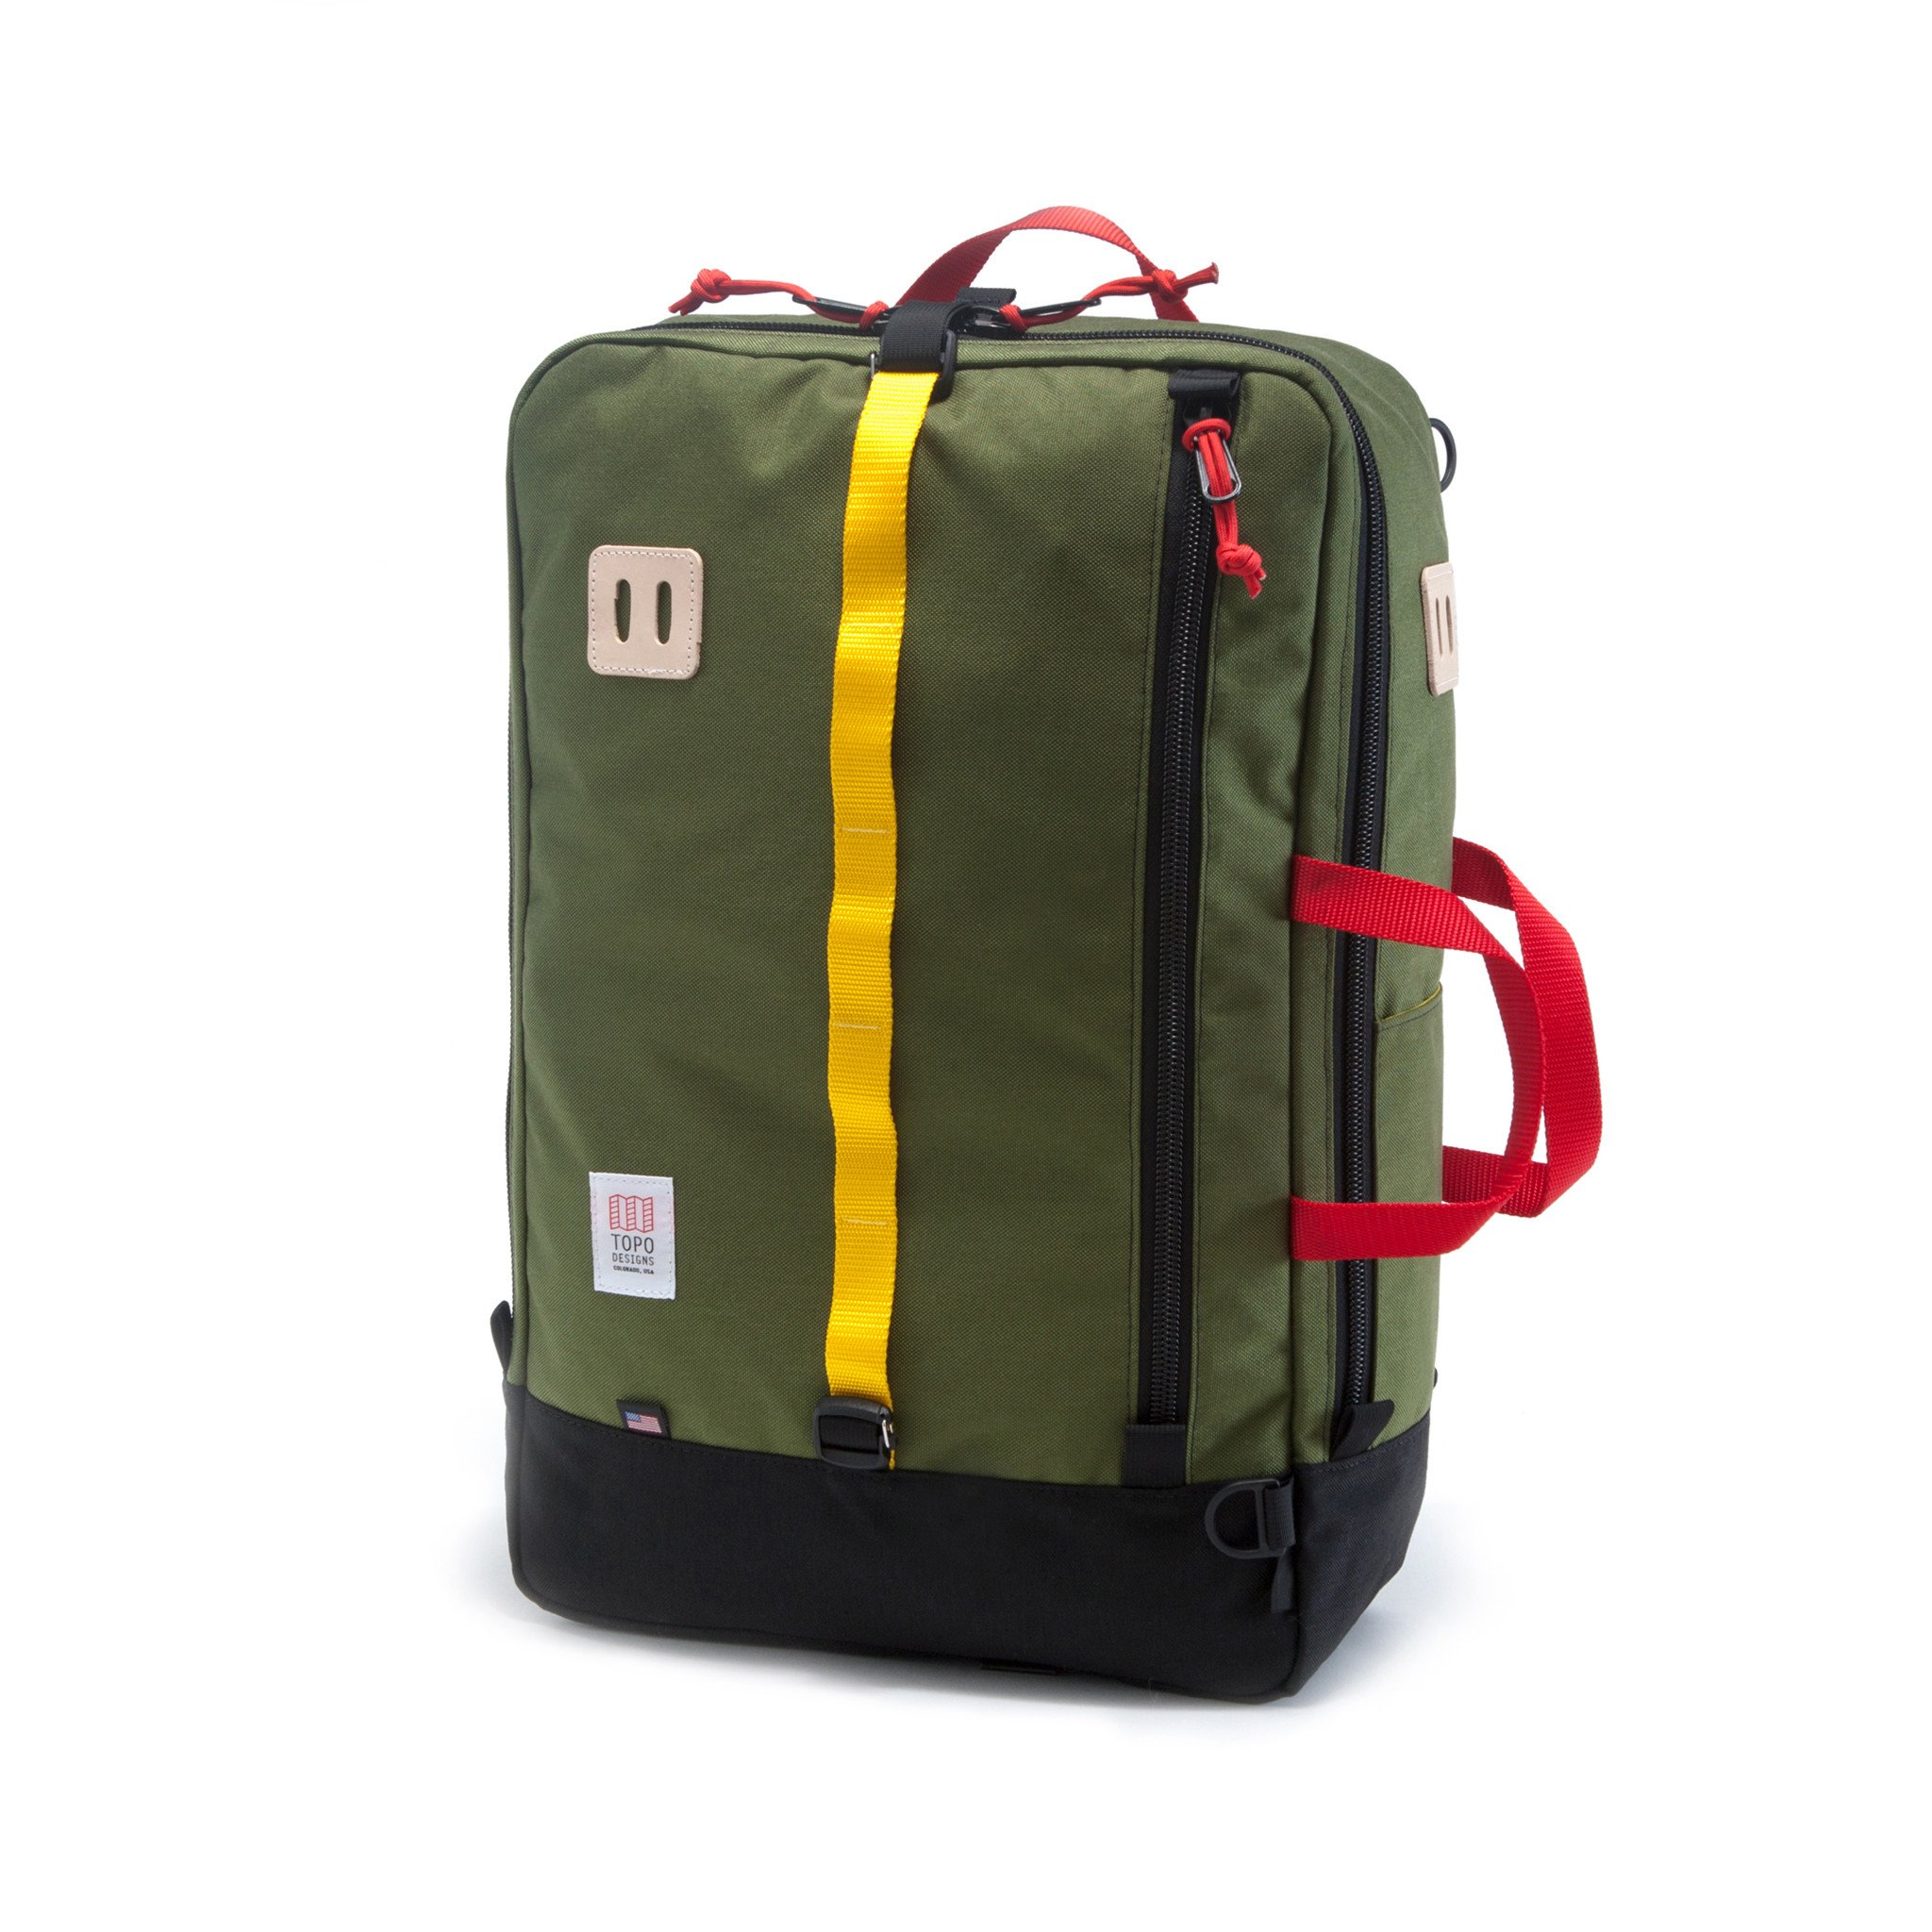 travel bags travel bag | topo designs - made in colorado, usa | topo designs ywaphvb